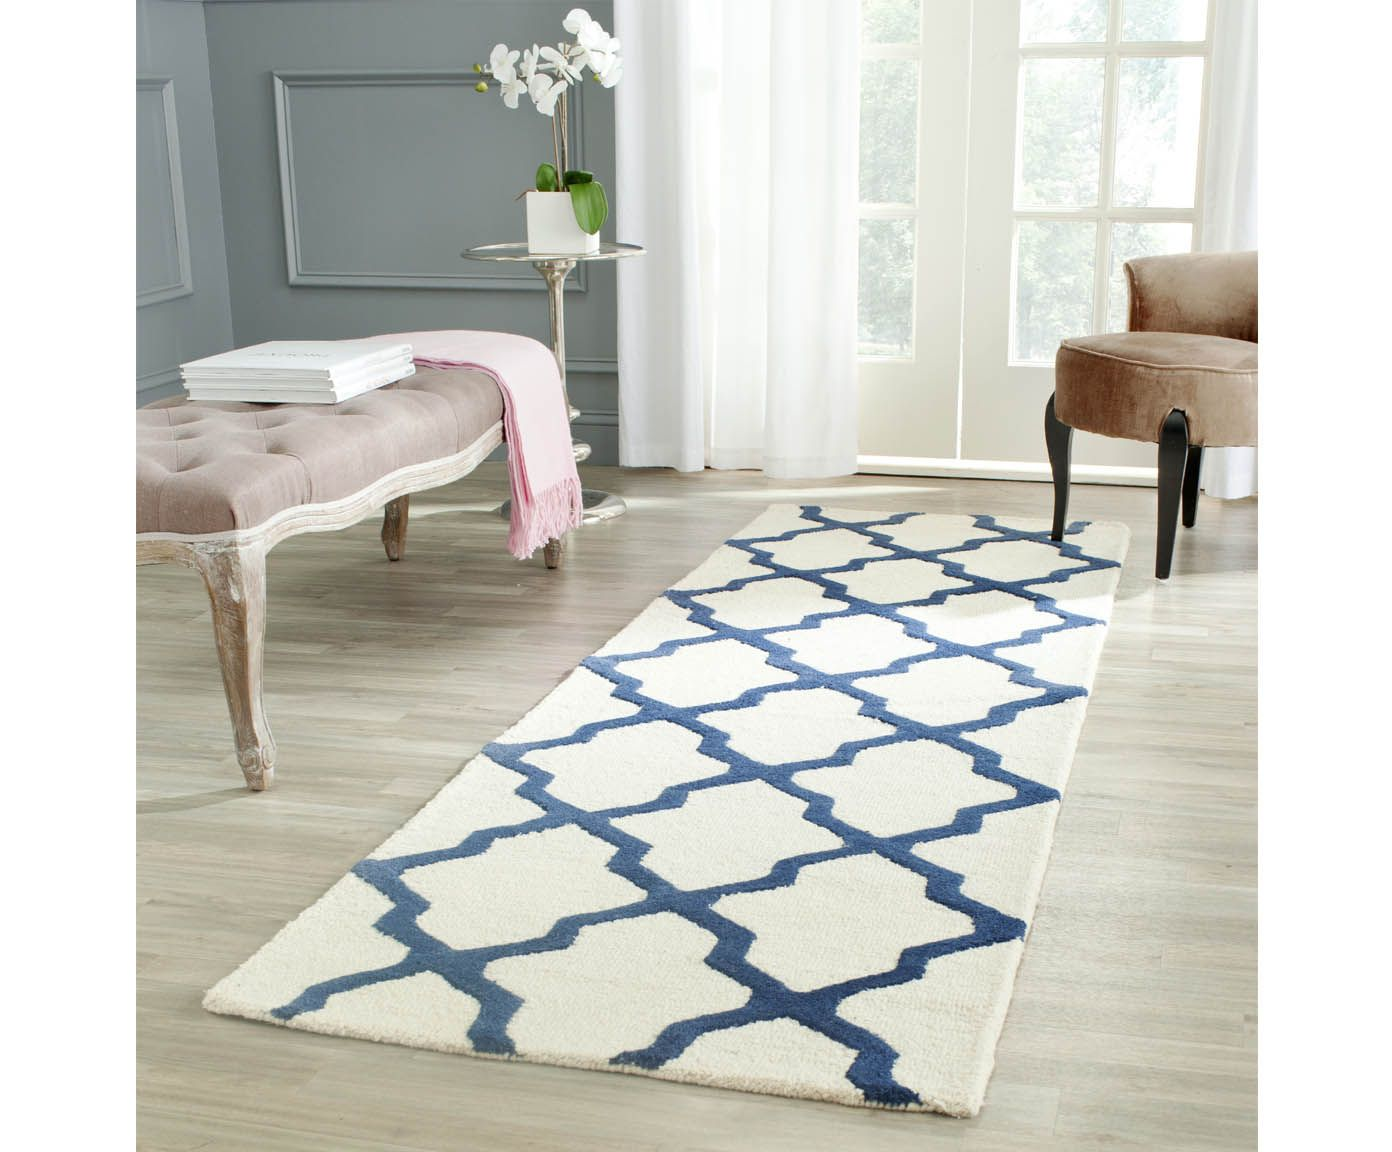 Vente Privee Decoration Vente Privée Sur Les Tapis Safavieh Westwing Bons Plans